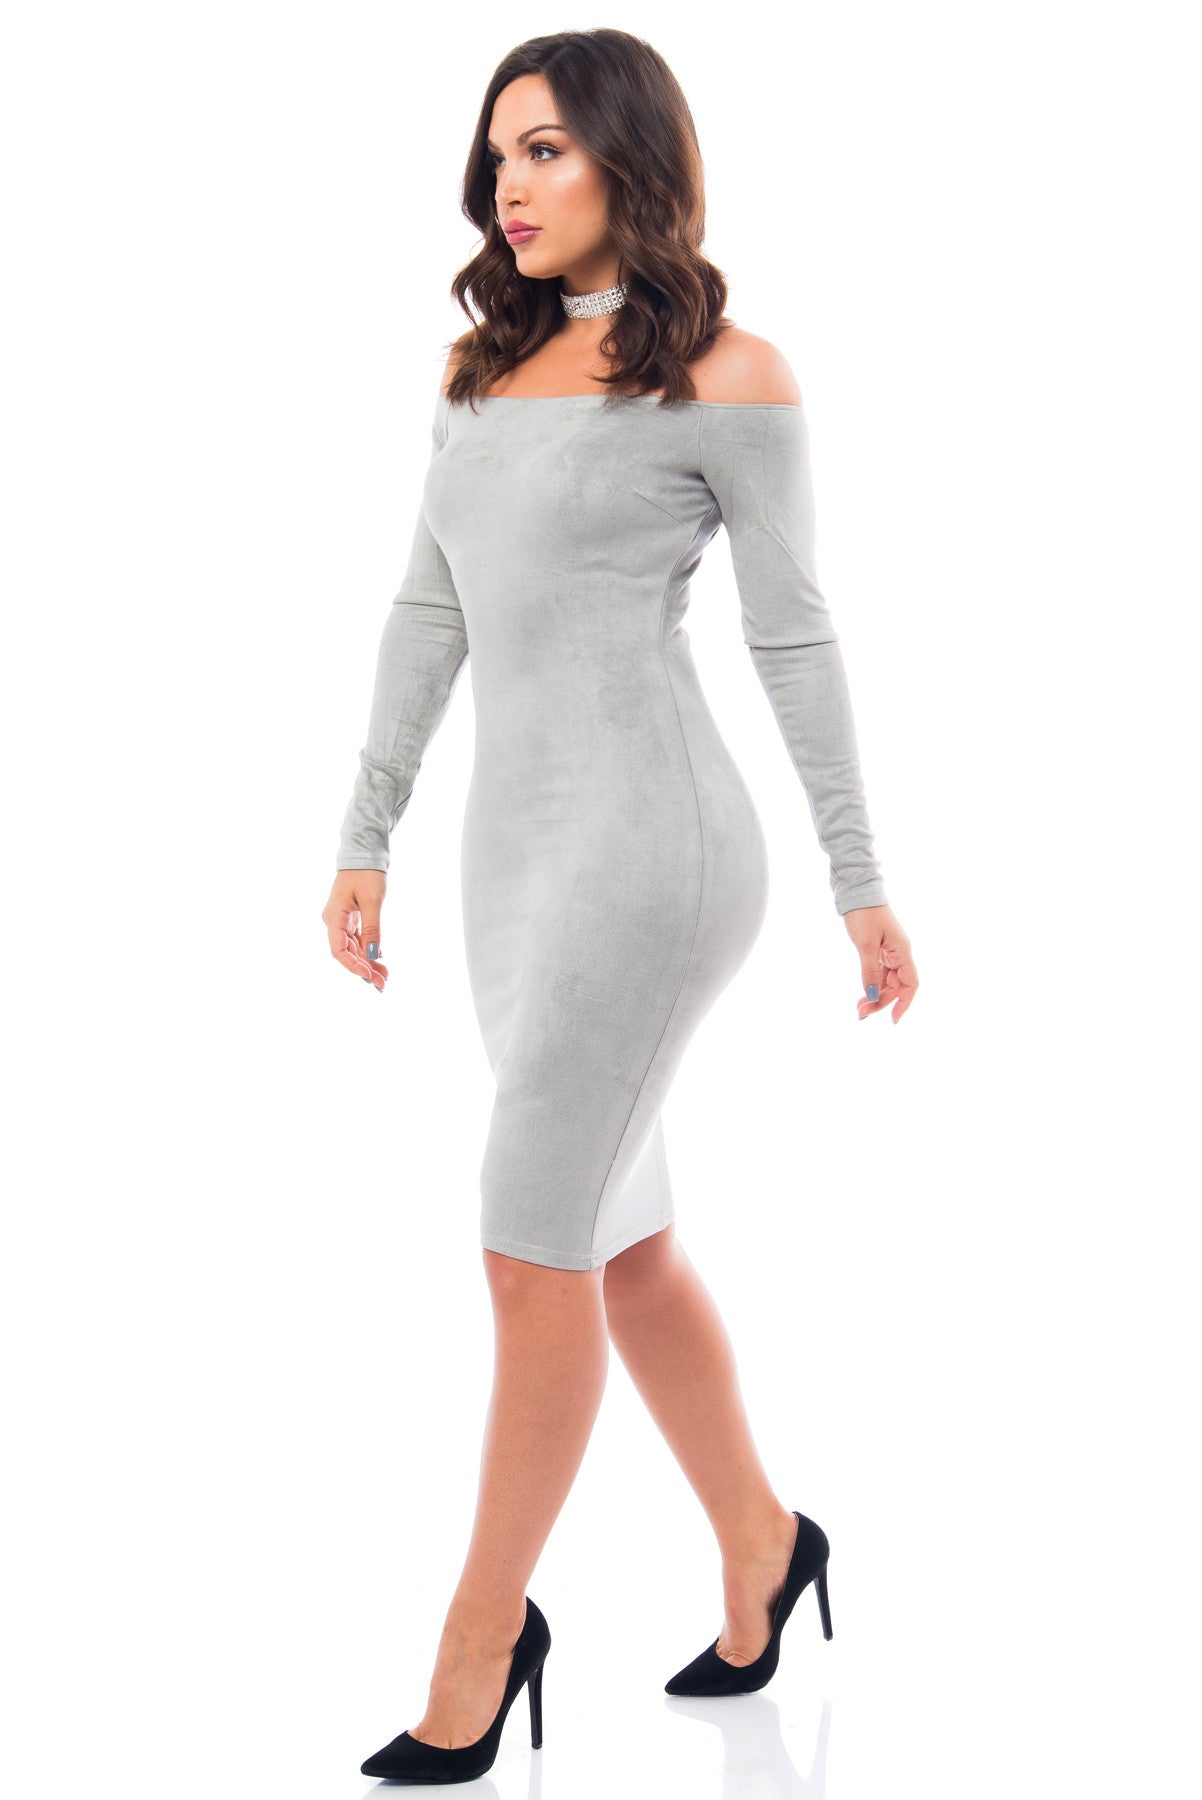 Silver Lining Suede Dress - Fashion Effect Store  - 3